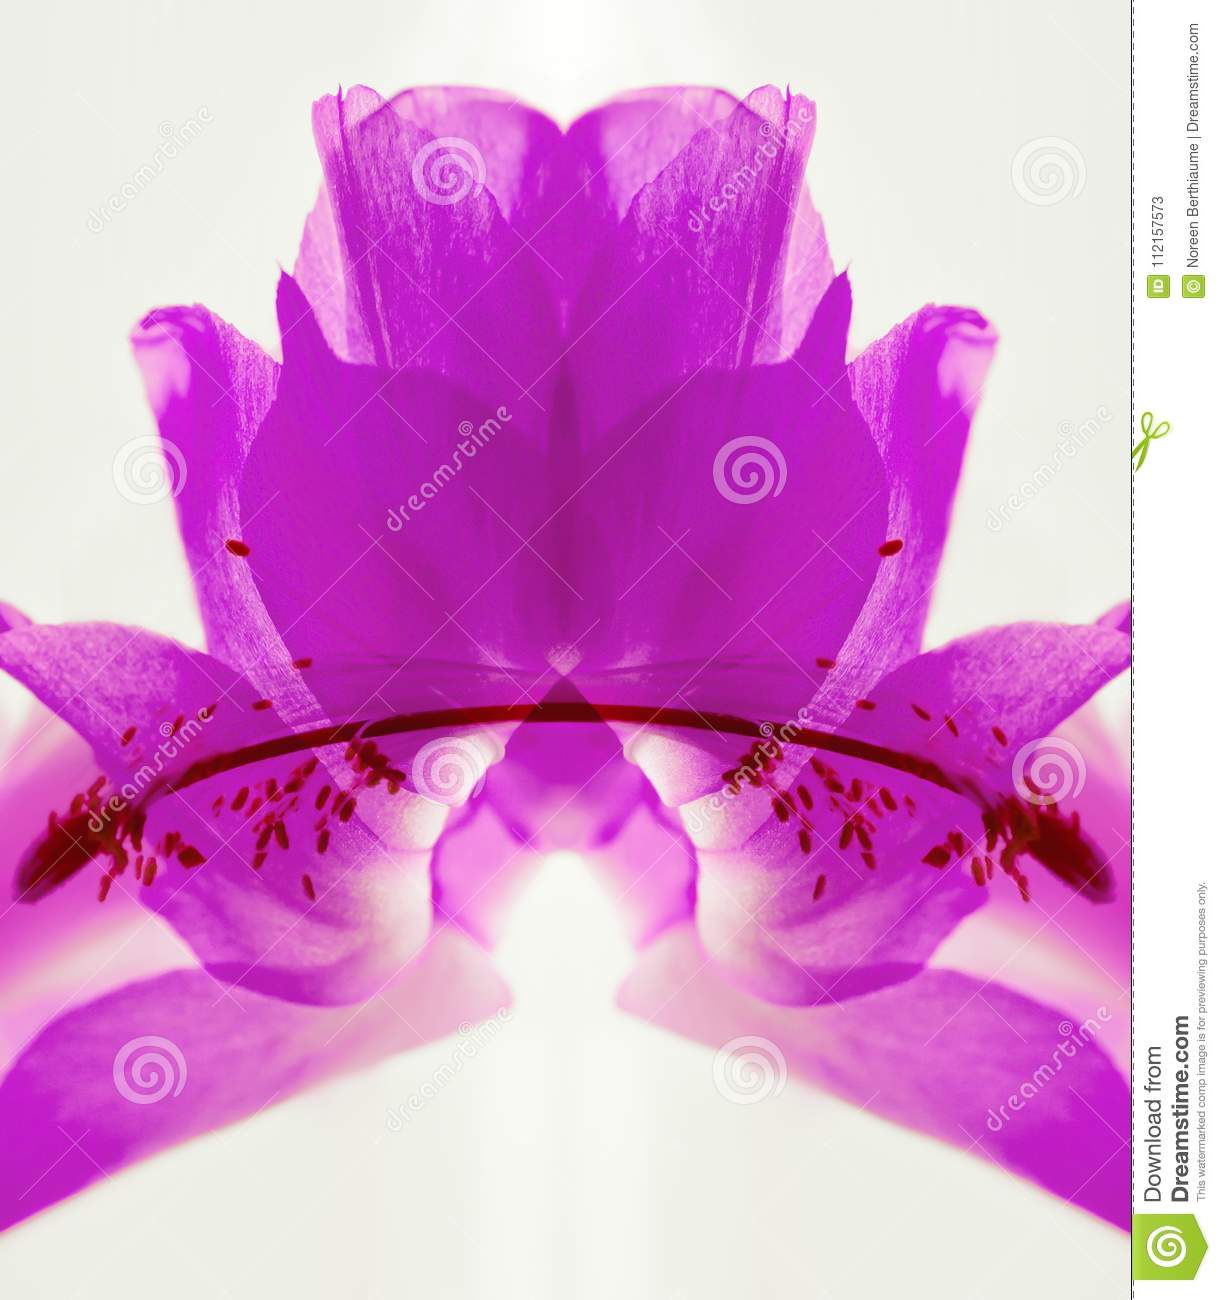 Ultraviolet Abstract of Cactus Flower